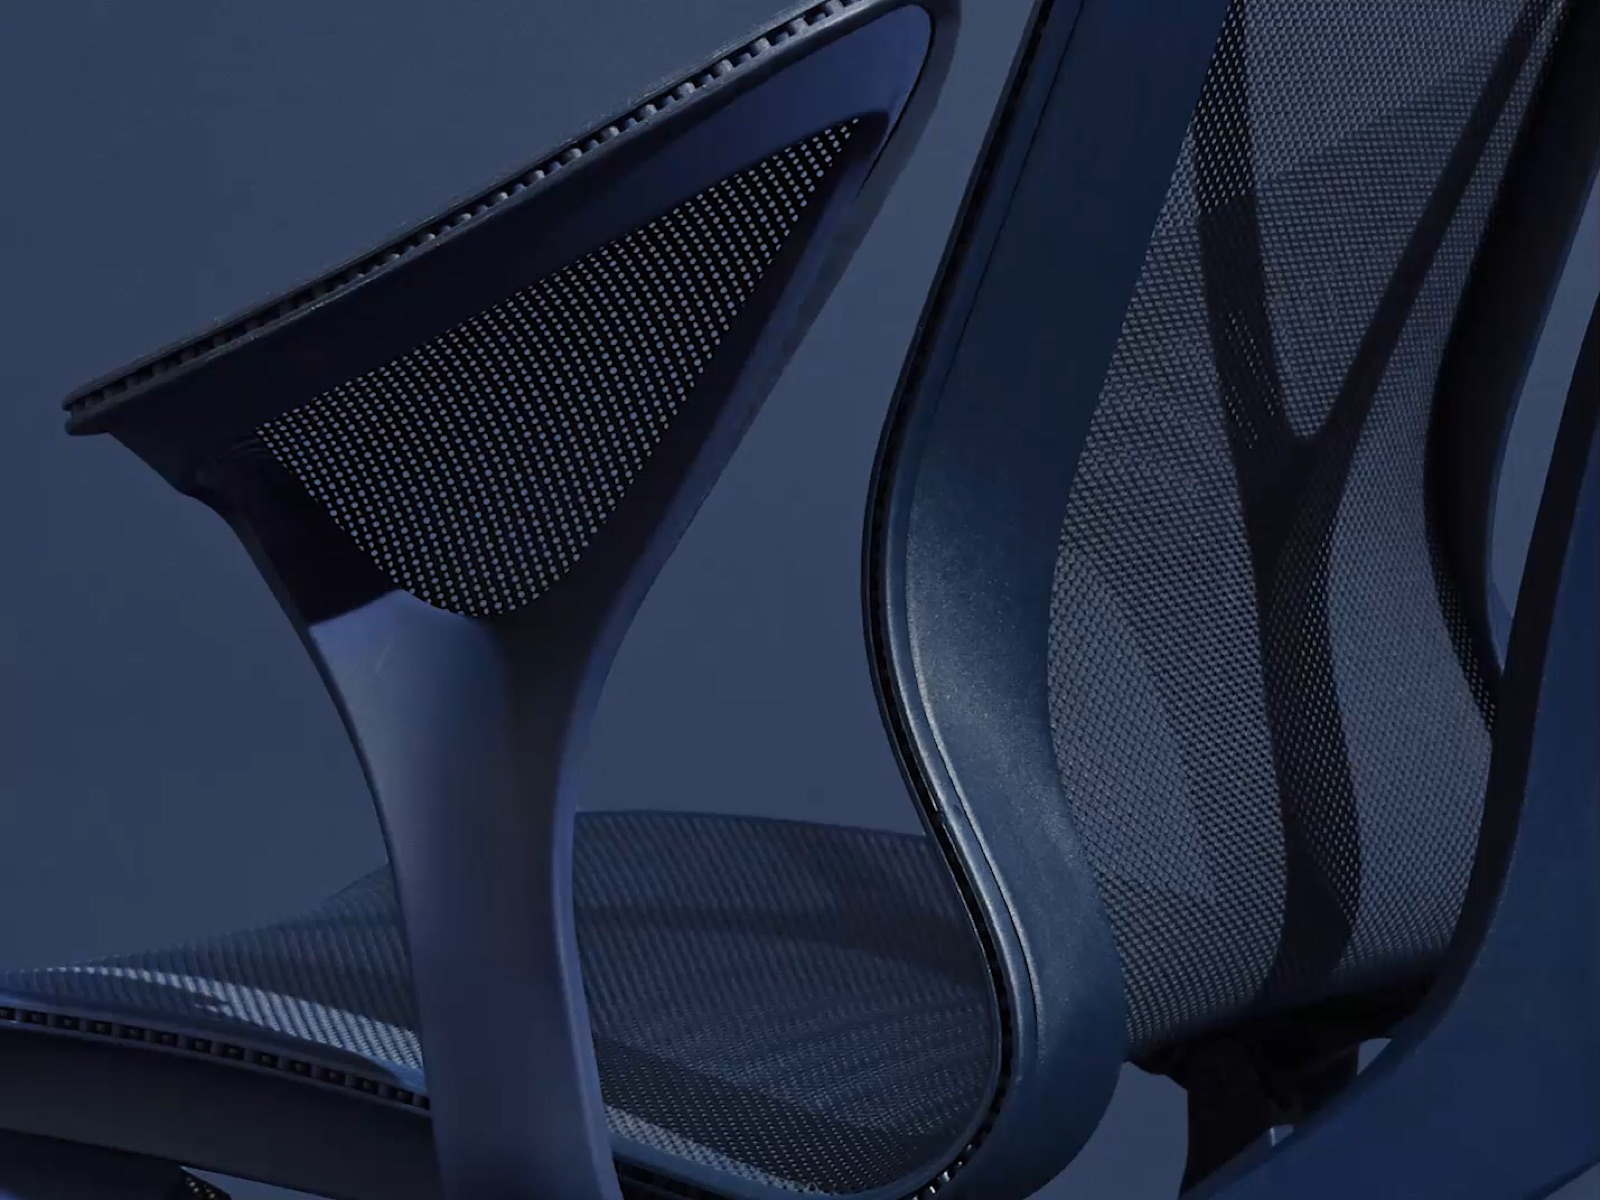 A close-up from behind of the leaf arm on a Nightfall dark blue Cosm ergonomic chair.